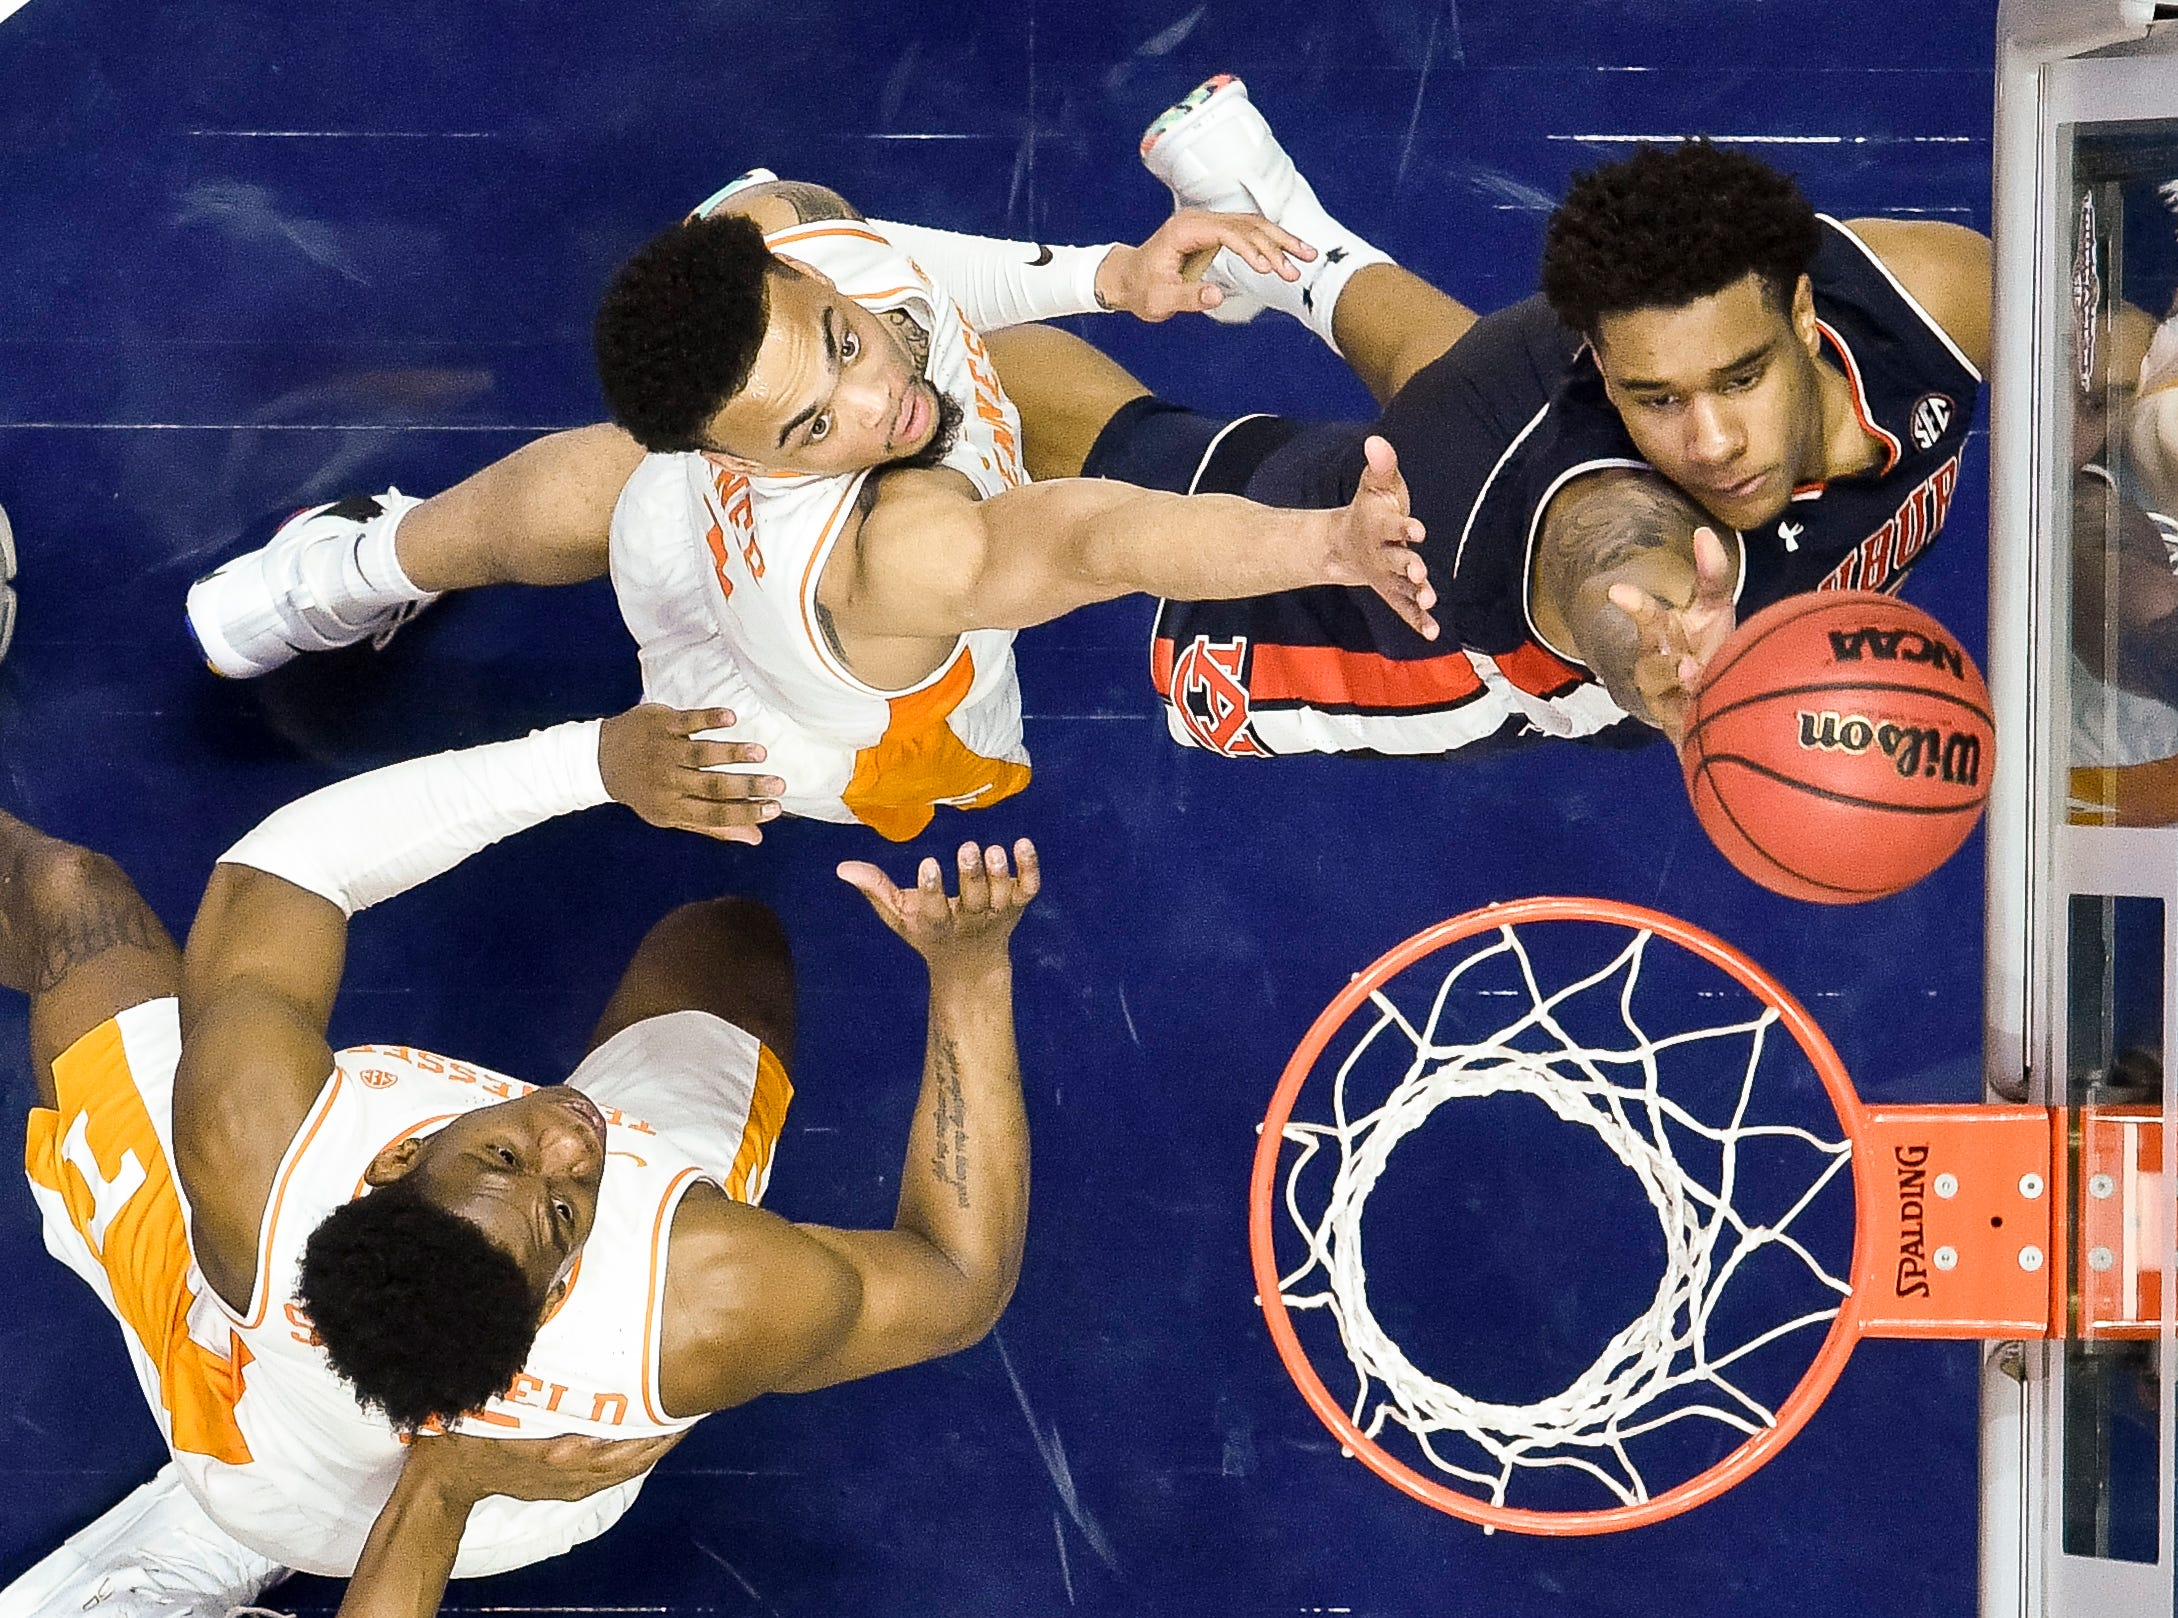 Auburn forward Chuma Okeke (5) shgoots past Tennessee guard Admiral Schofield (5) and guard Lamonte Turner (1) during the second half of the SEC Men's Basketball Tournament championship game at Bridgestone Arena in Nashville, Tenn., Sunday, March 17, 2019.